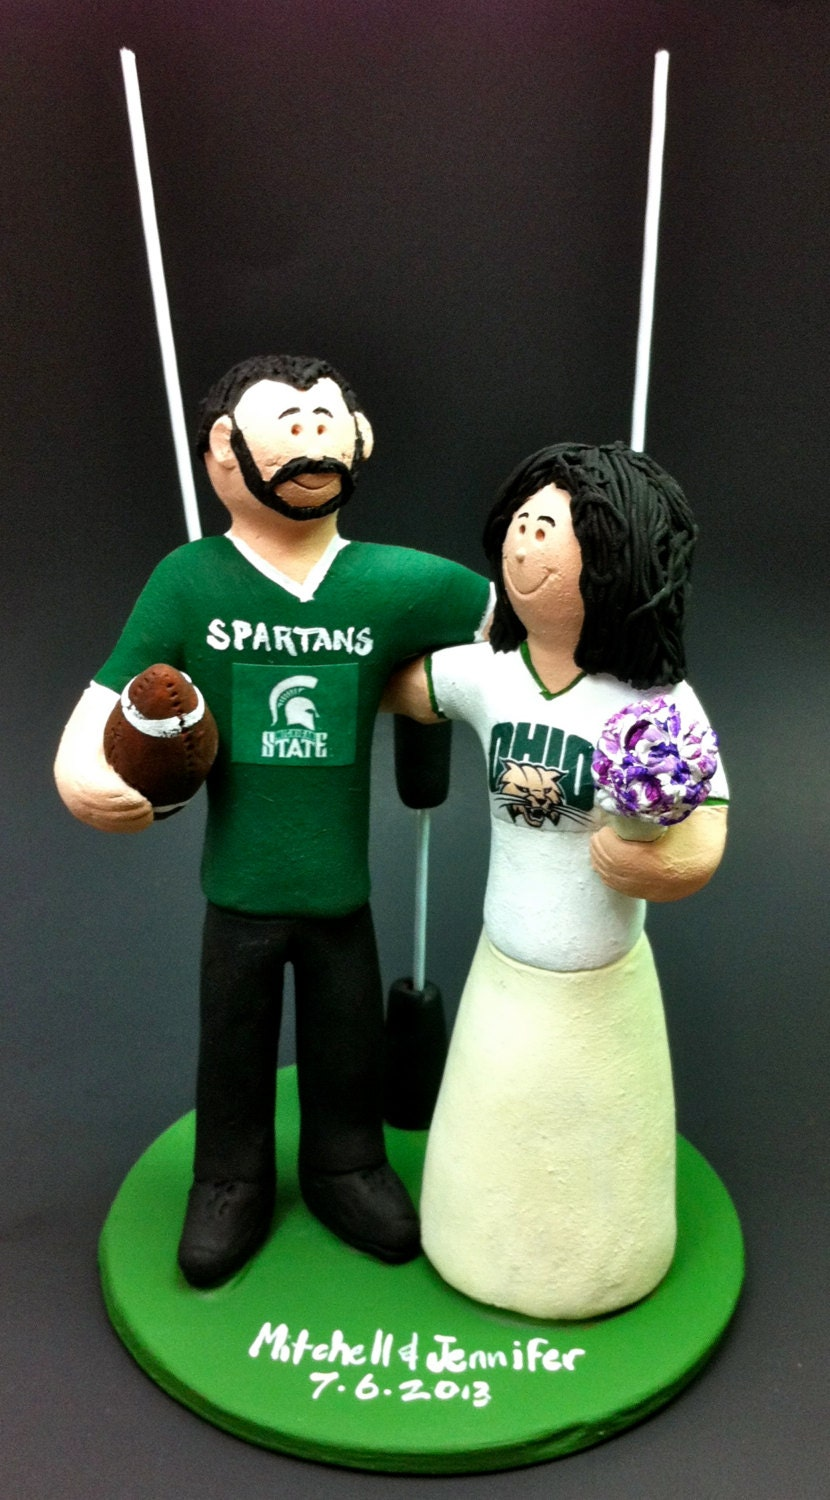 ohio state michigan wedding cake toppers michigan state spartans groom wedding cake topper ohio 17977